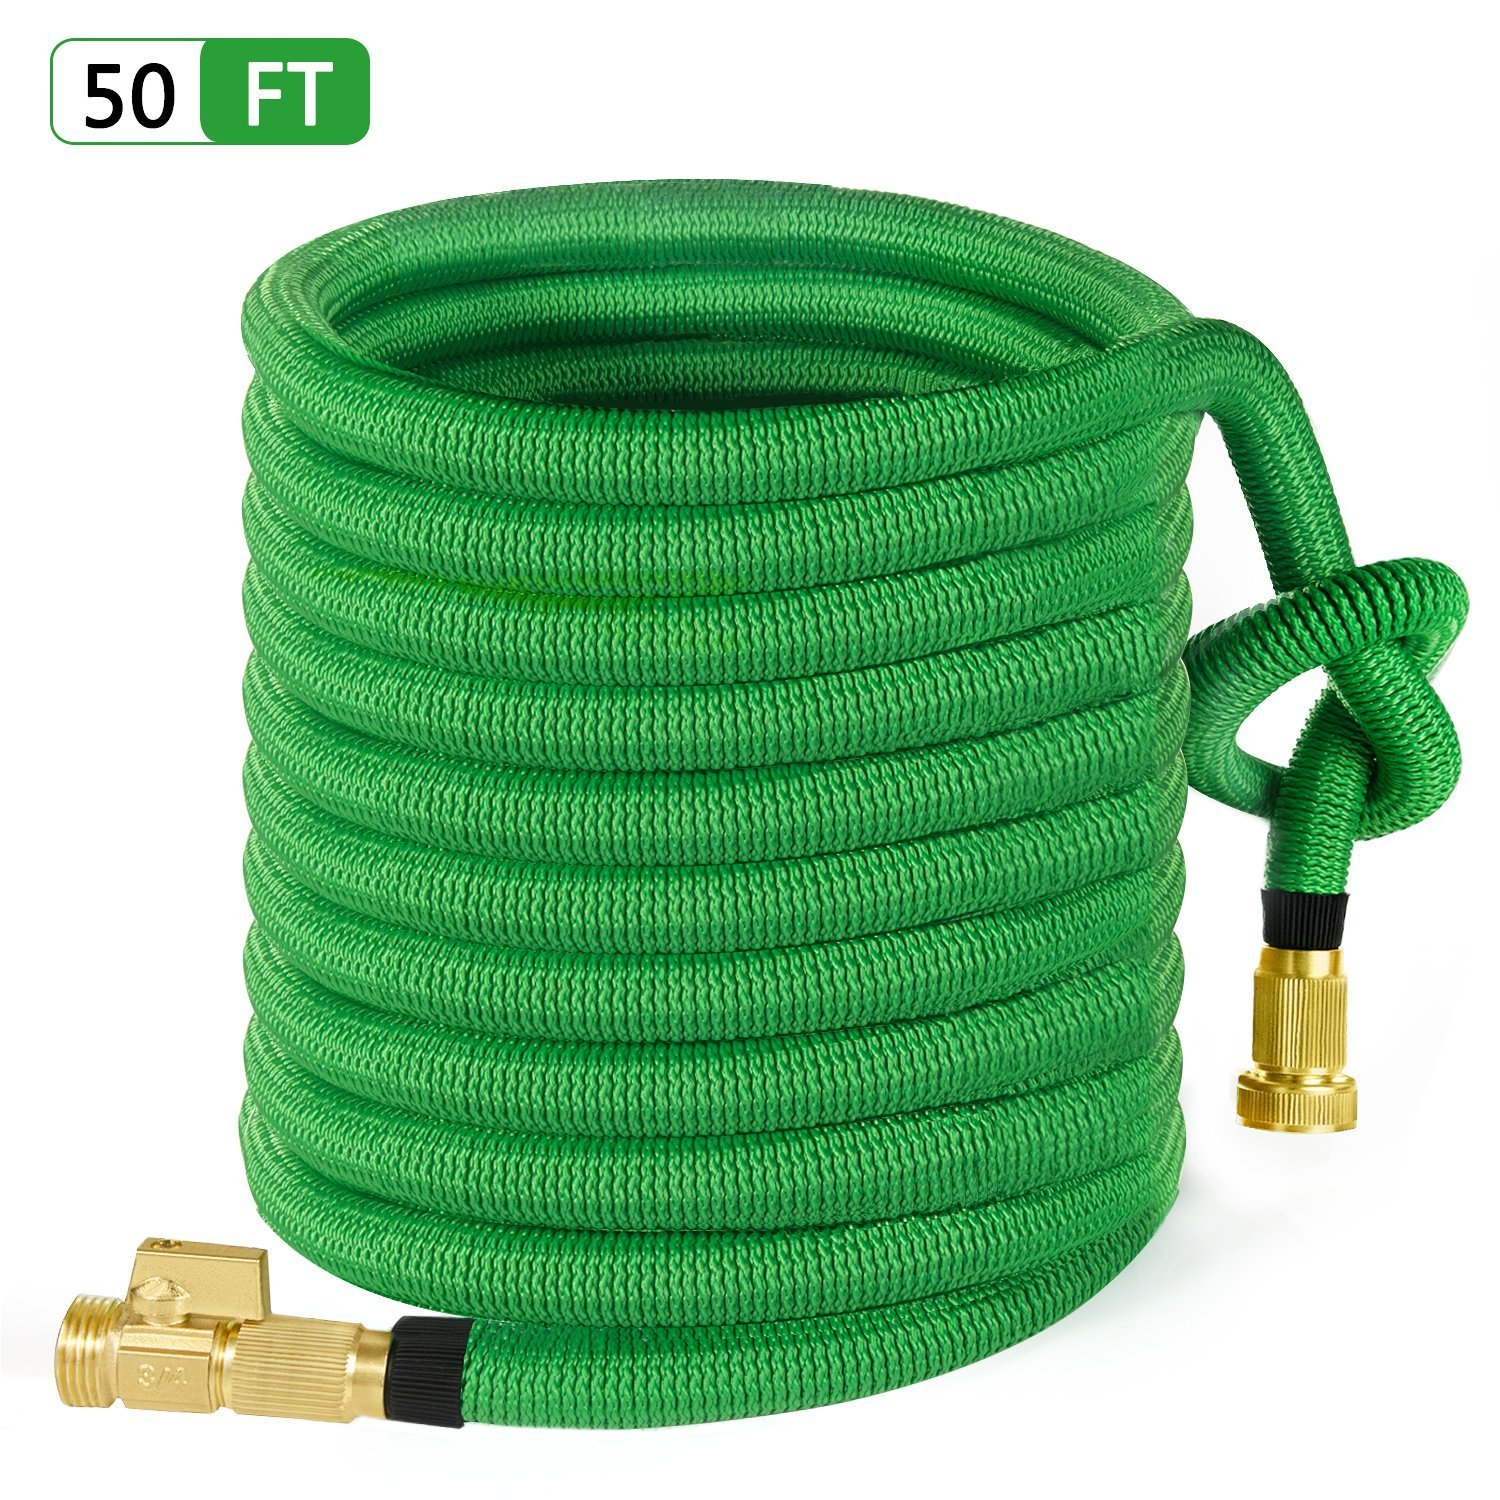 "MoonLa 50ft Garden Hose, All New Expandable Water Hose with 3/4"" Solid Brass Fittings, Extra Strength Fabric - Flexible Expanding Hose with Free Storage Bag"